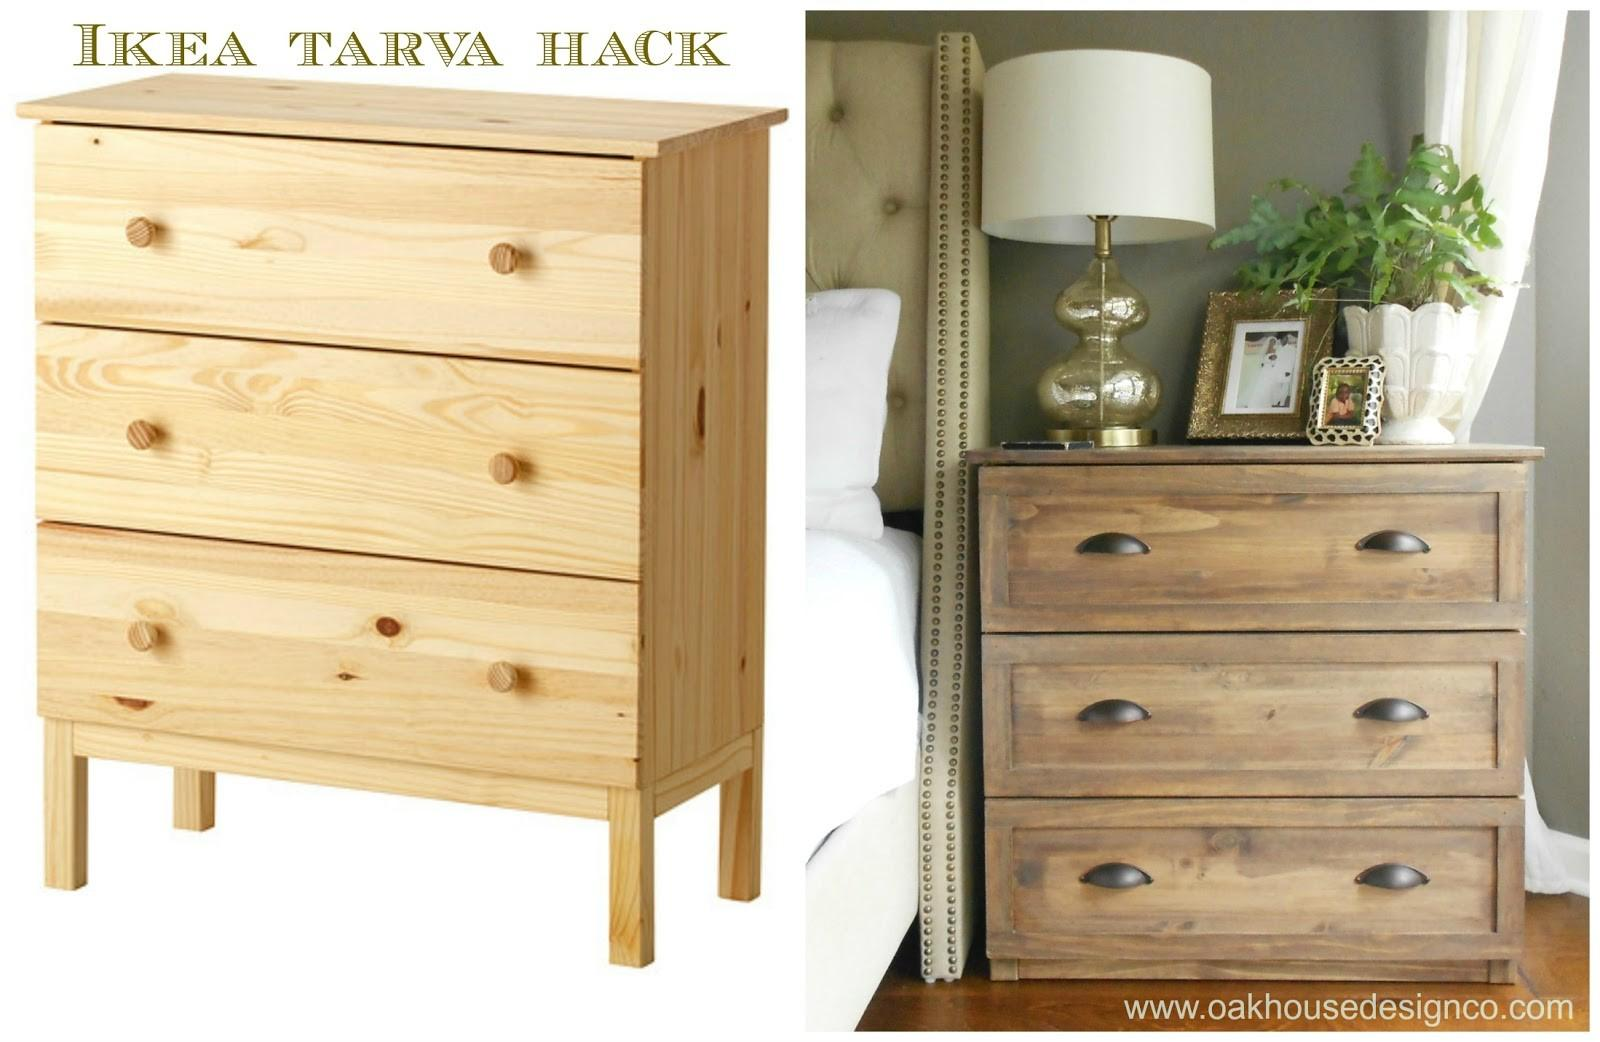 New Nightstands Tarva Hack Oak House Design